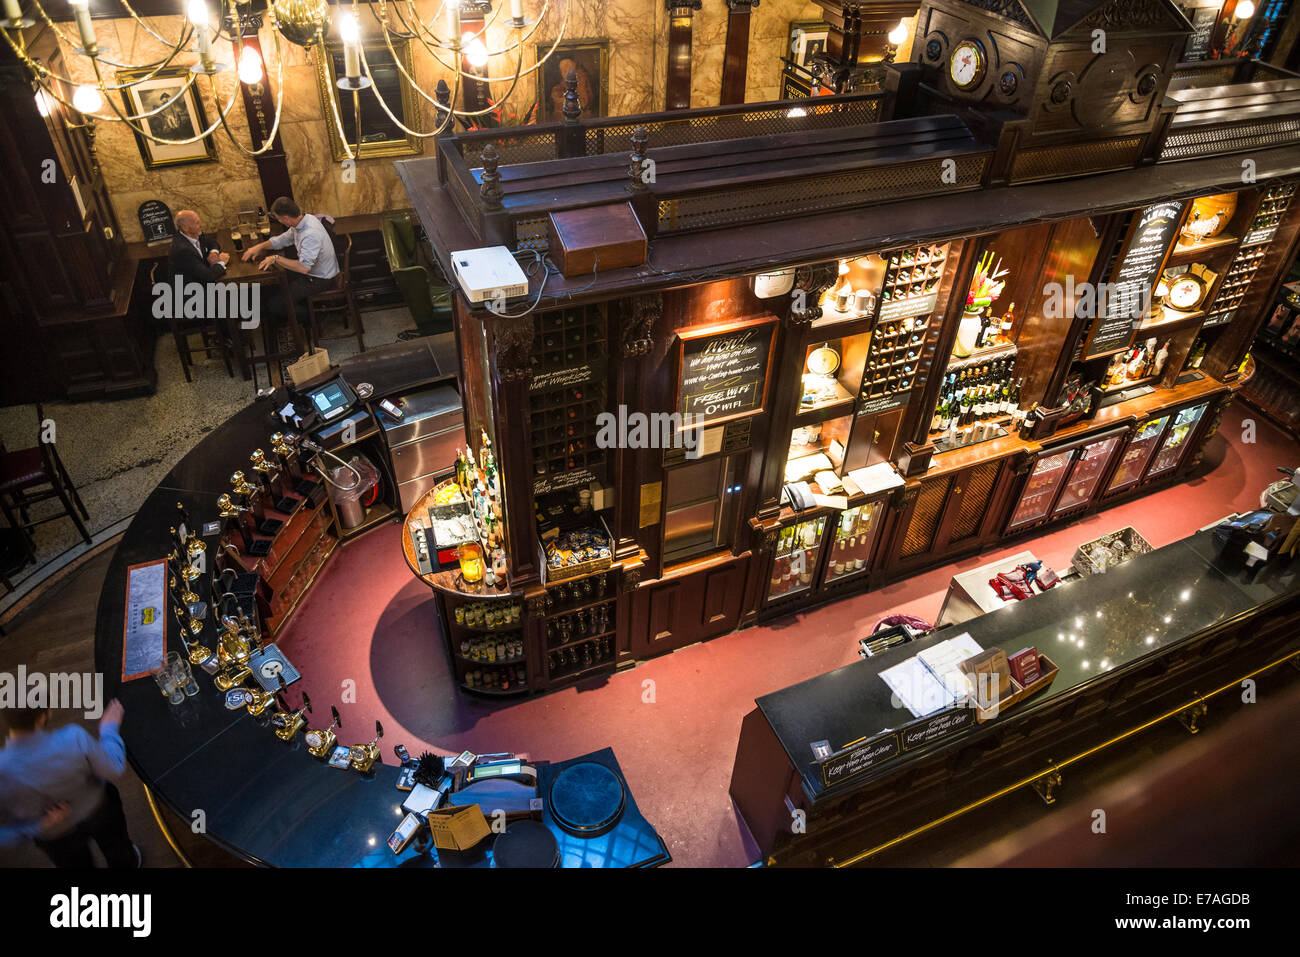 Traditional pub The Counting House in Cornhill, Square Mile, City of London, UK Stock Photo